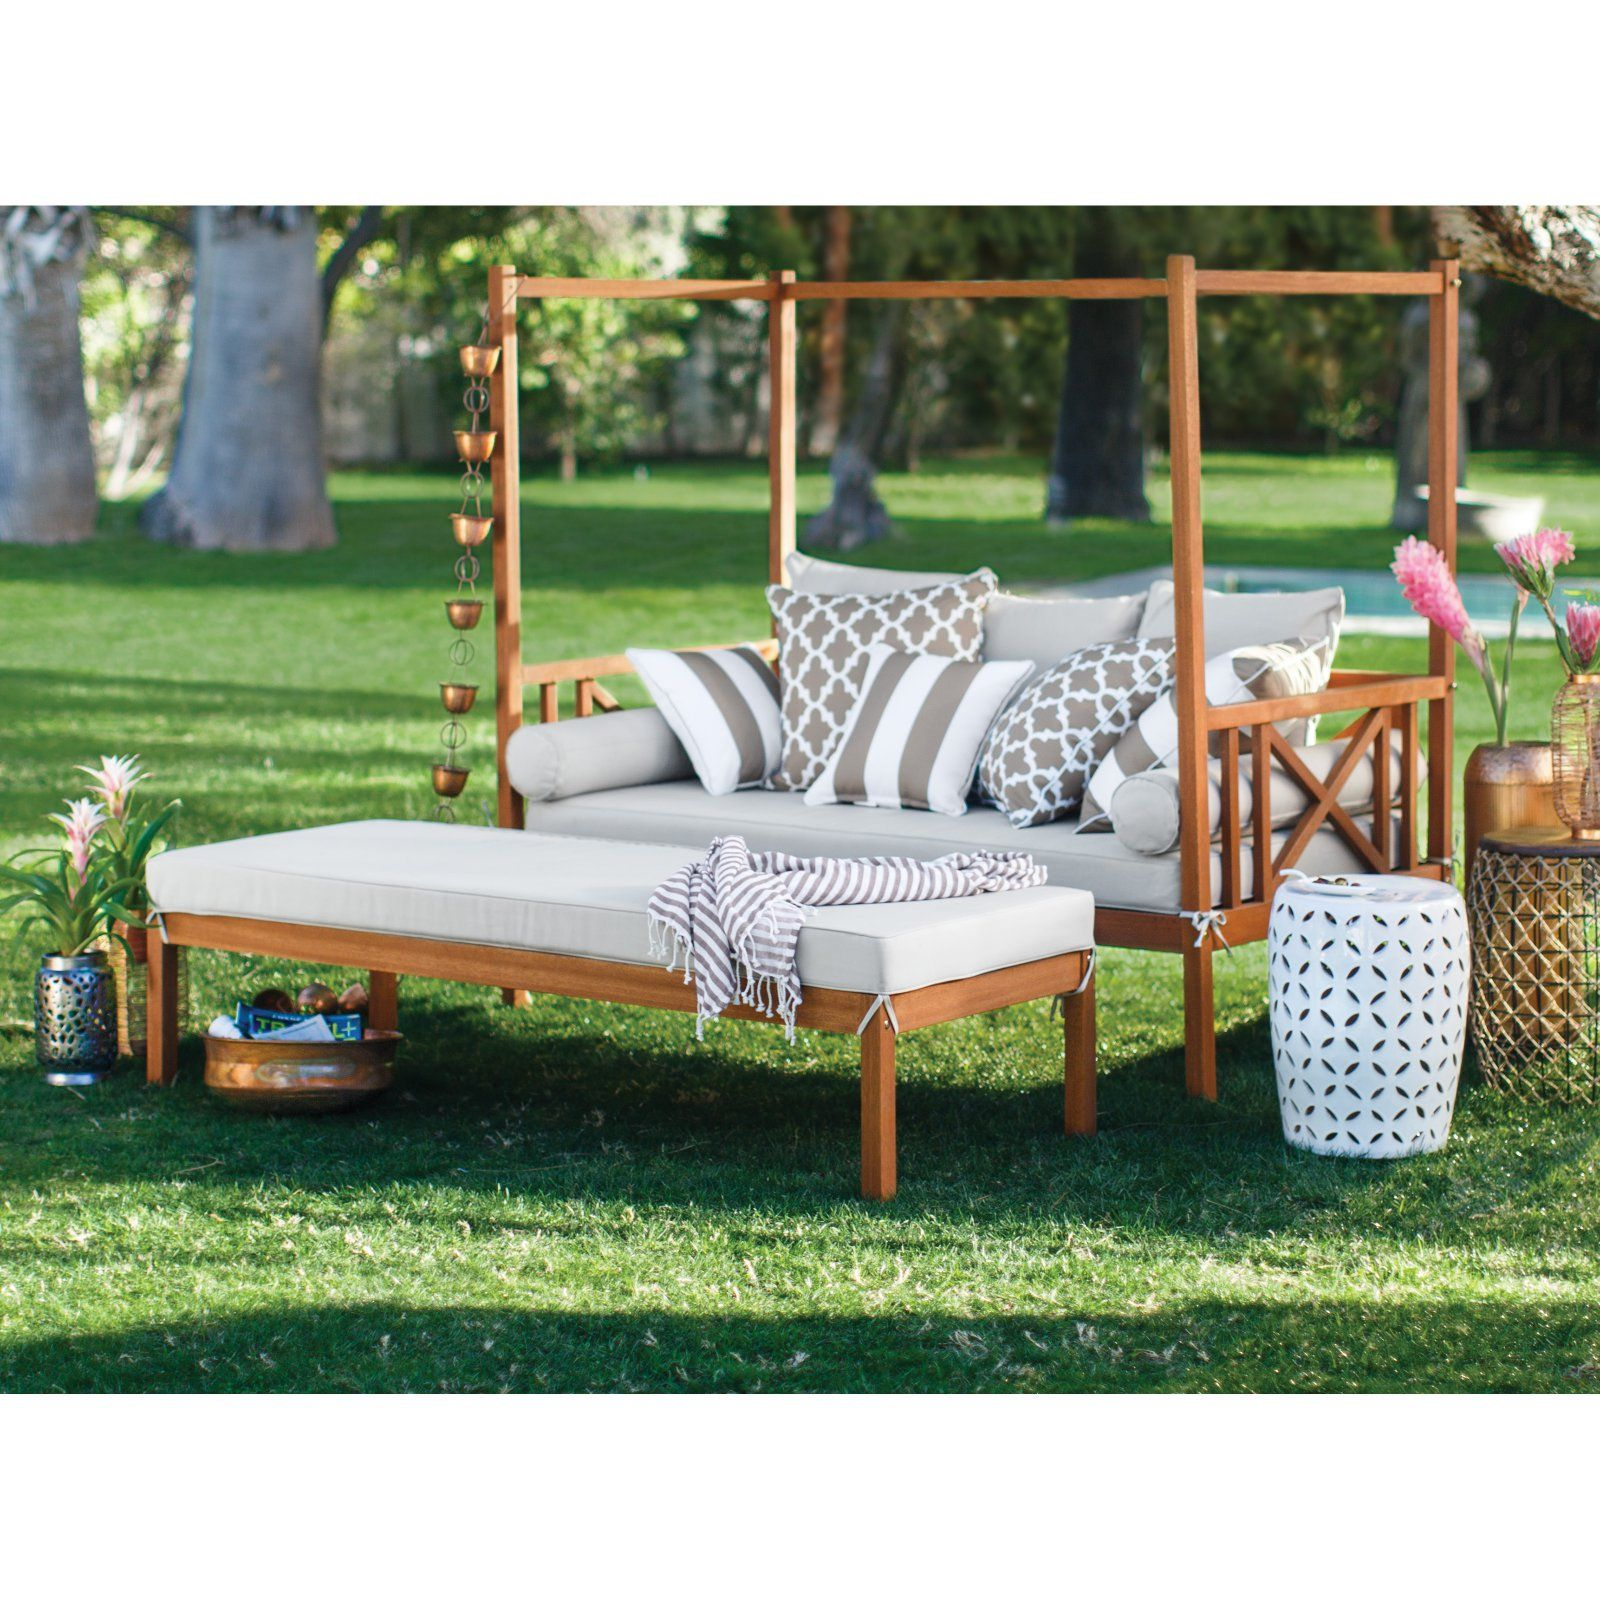 Pin on Kids outdoor furniture on Belham Living Brighton Outdoor Daybed id=41628